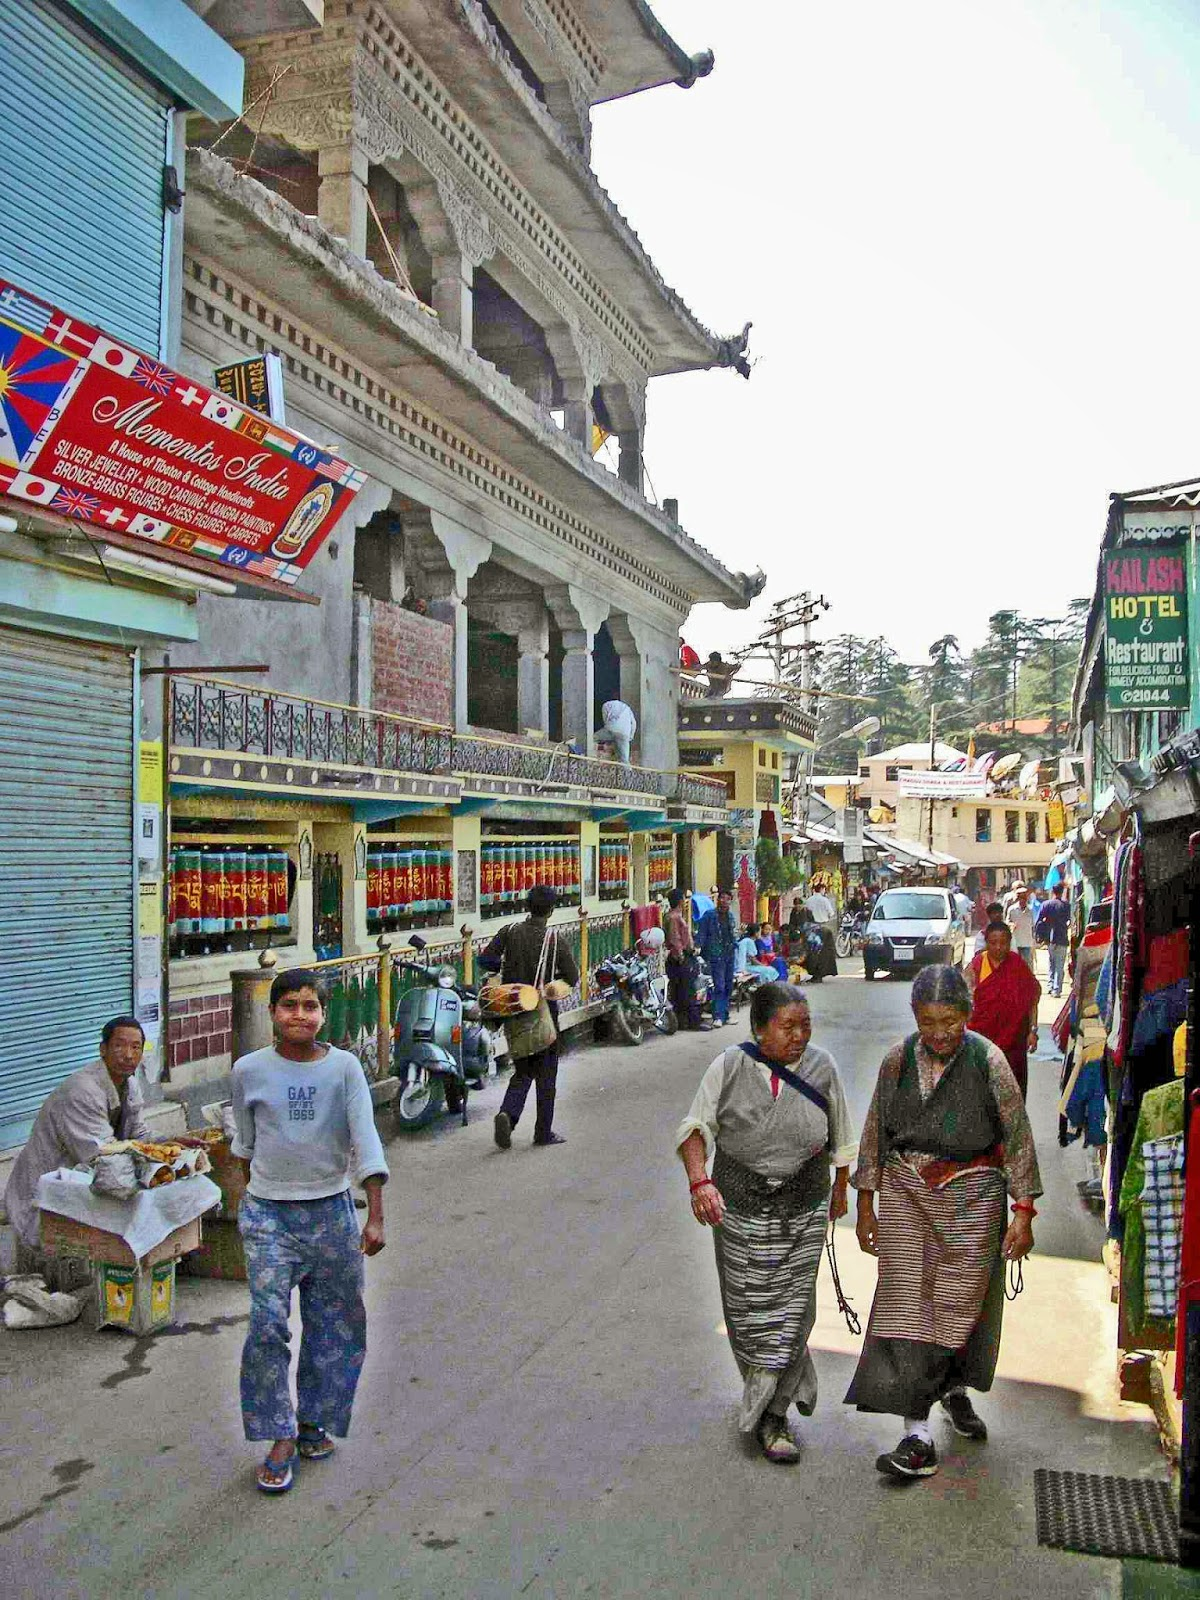 10 Best Backpacking Destinations in India | The main street in McLeodGanj